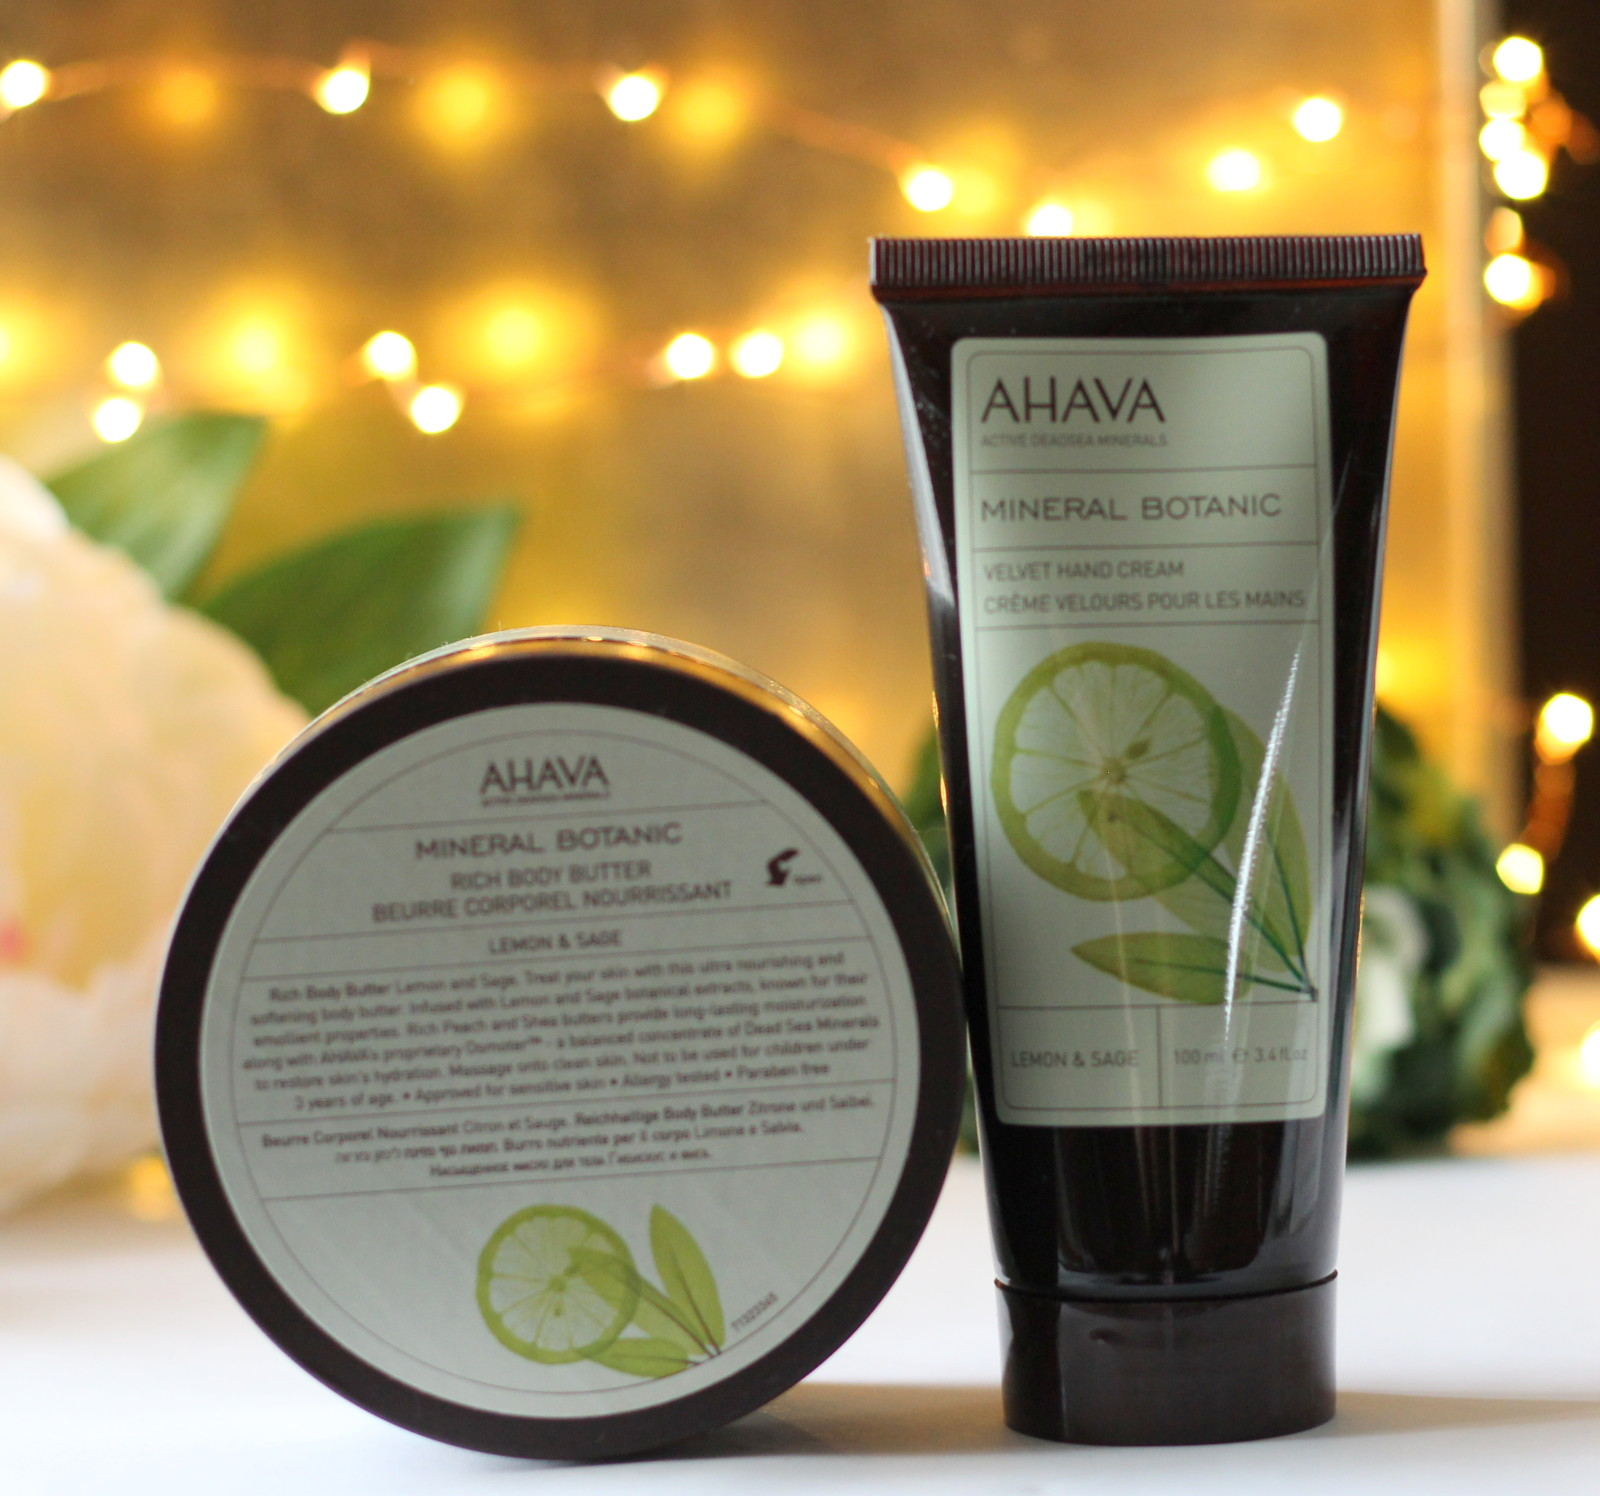 Ahava Lemon Sage Body Butter Review